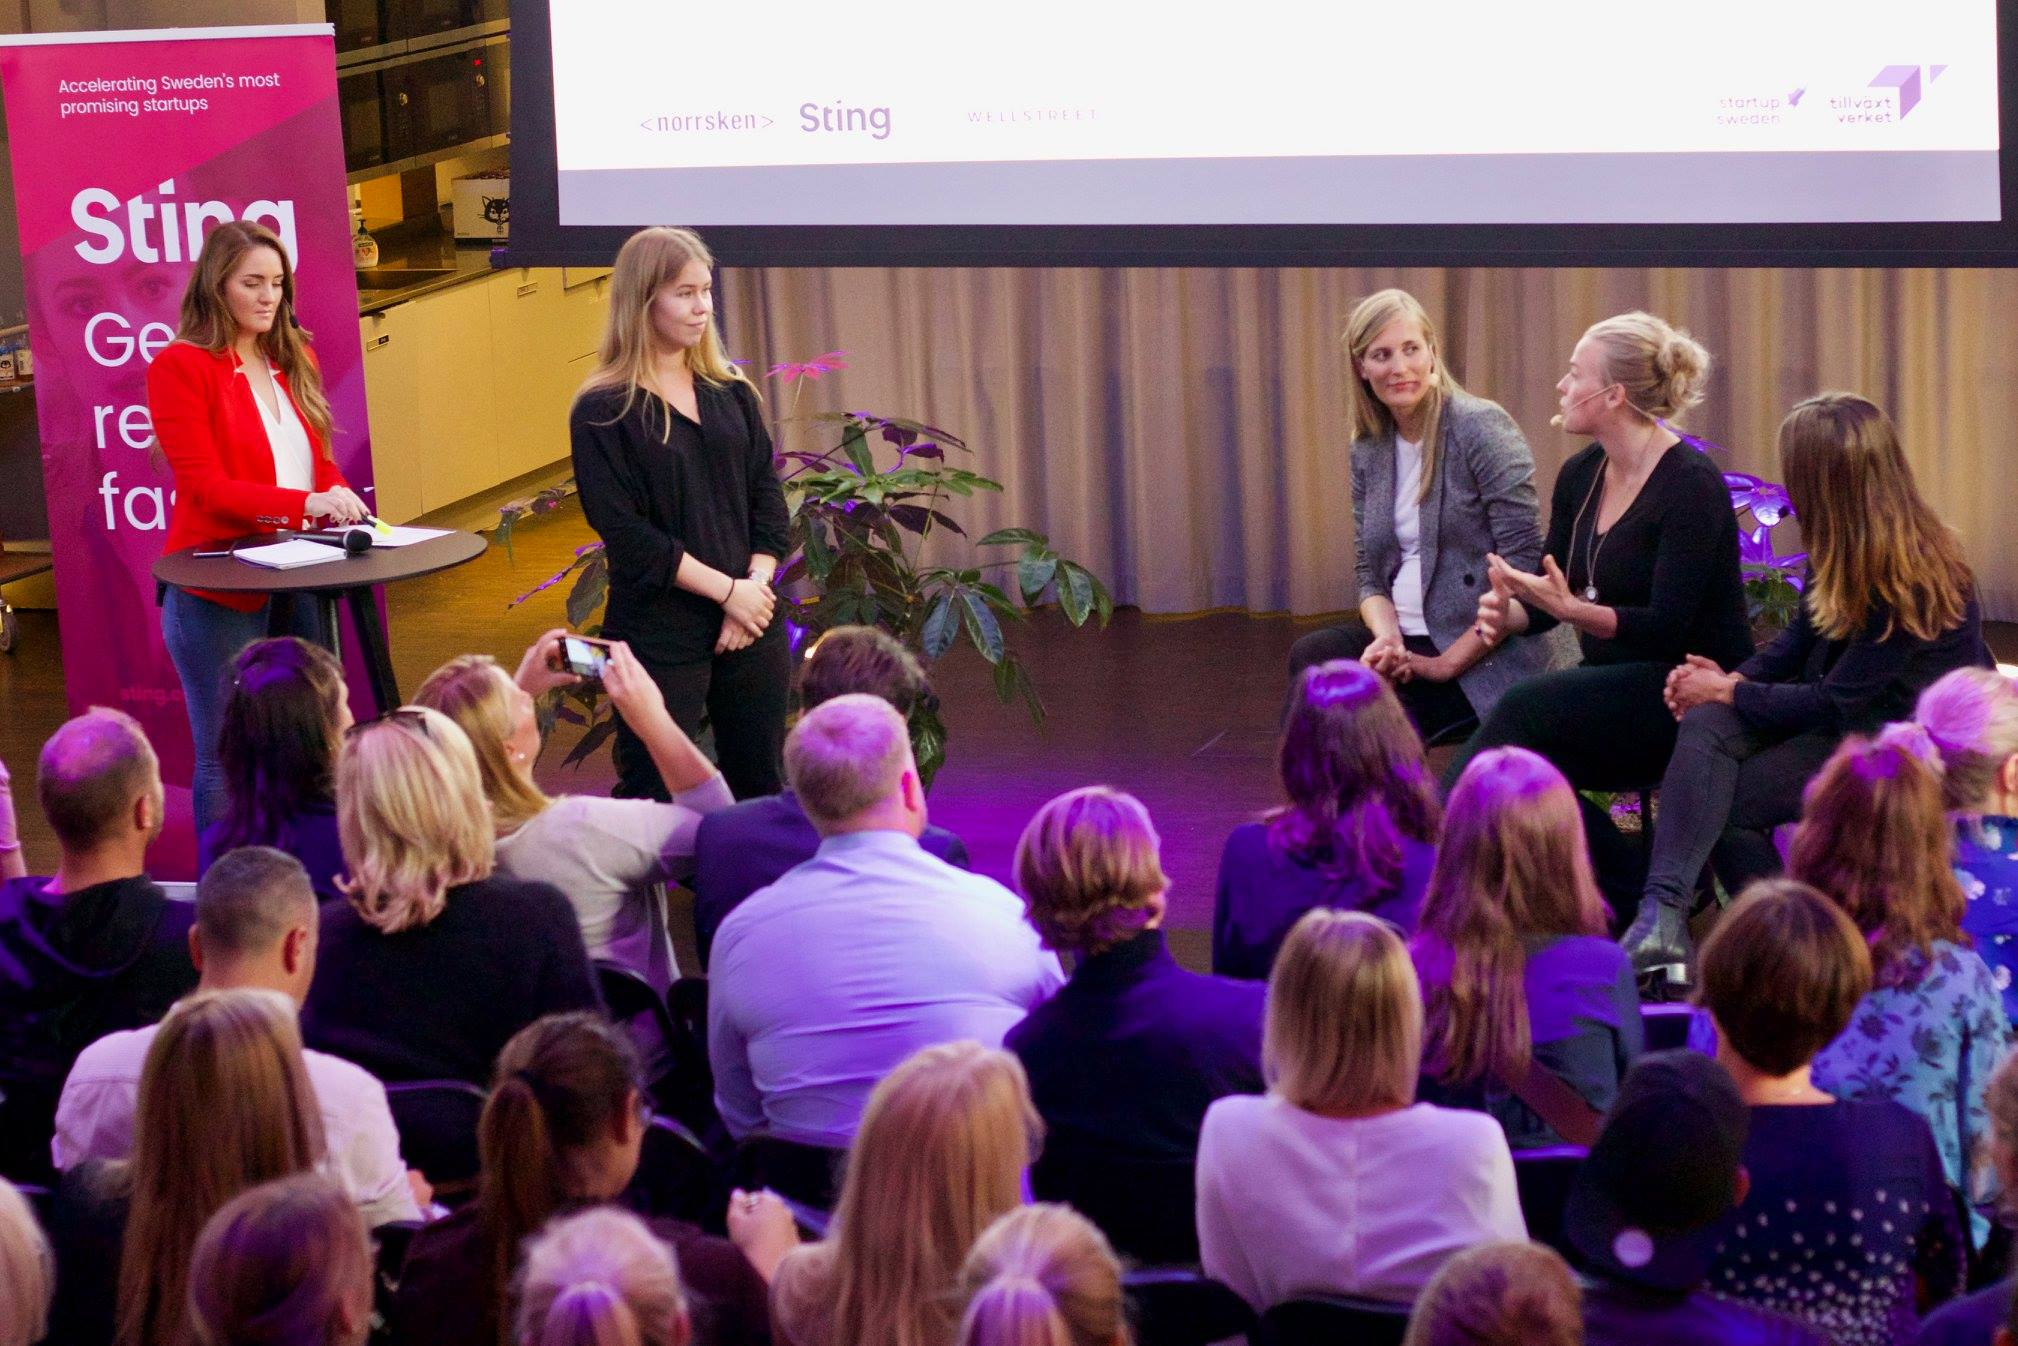 10 startups pitched at Norrsken House infront of VC-panel from Norrsken Foundation, Creandum, H&M Co-lab. Ronja Koepke moderated the event infront of 150+ attendees.